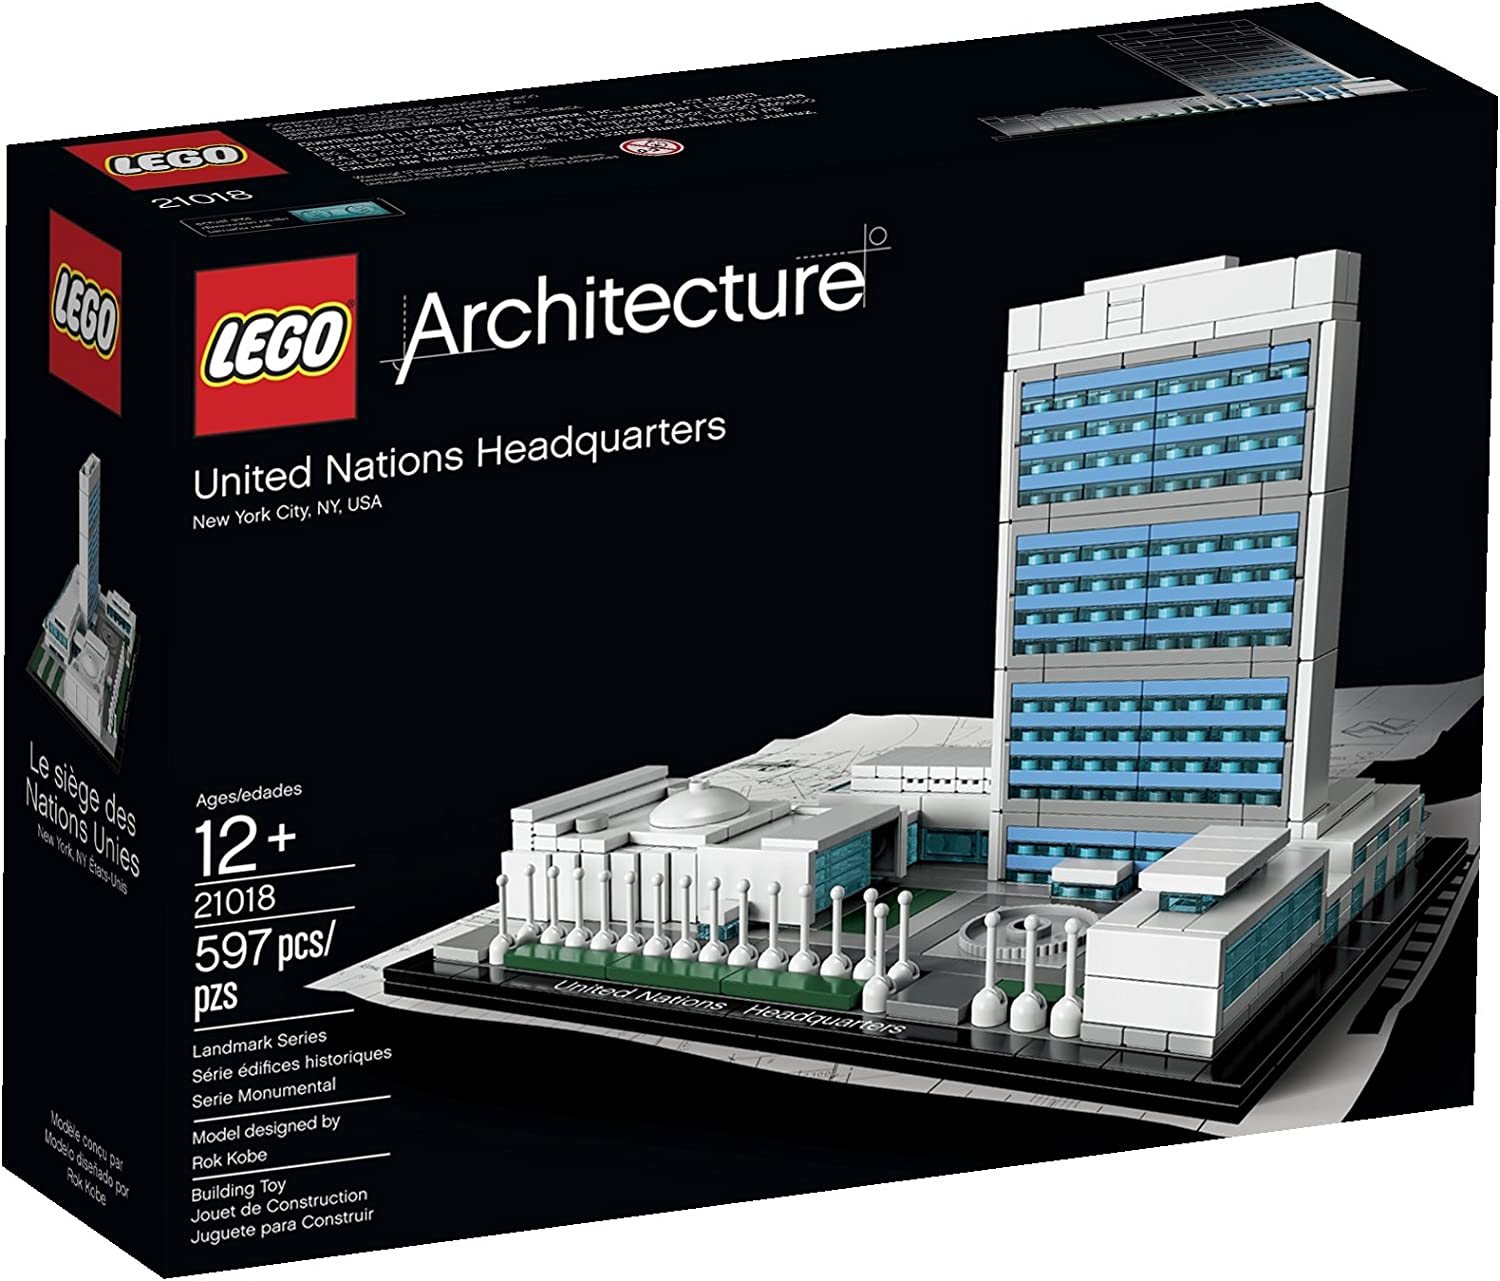 LEGO Architecture United Nations Headquarters 21018 (Discontinued by manufacturer)